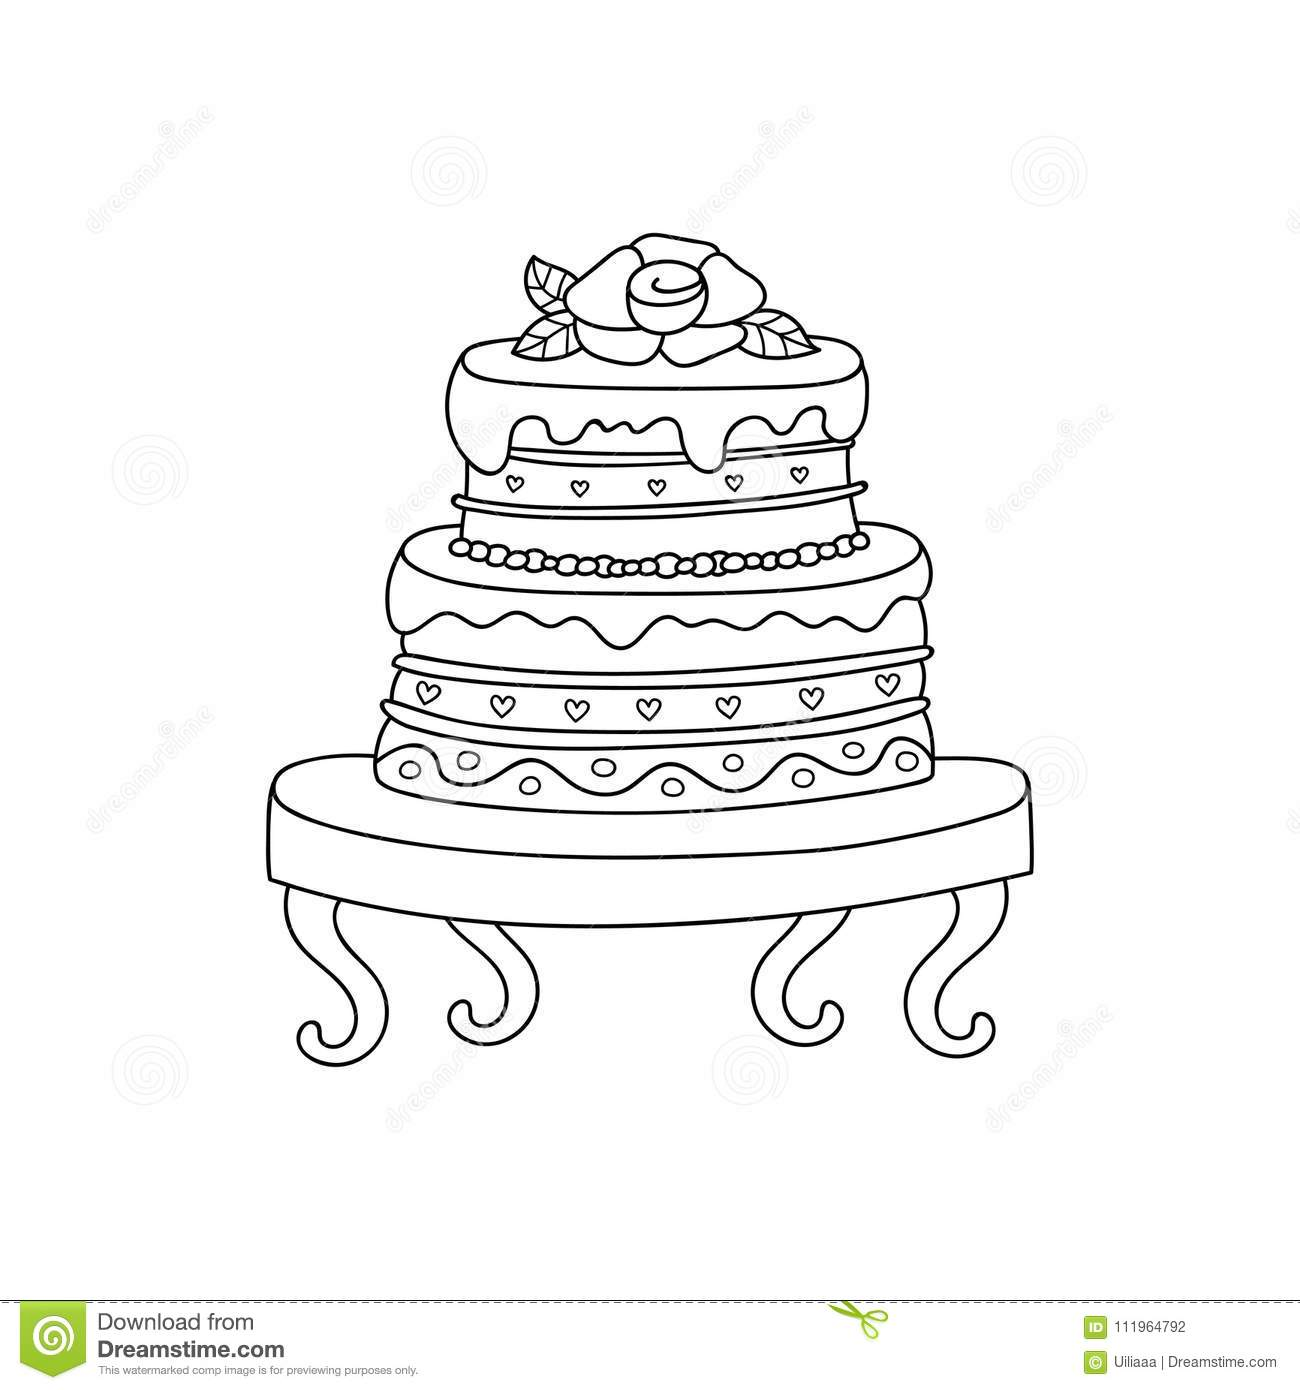 Vector Wedding Cake For Wedding Invitations Or Announcements. Stock ...